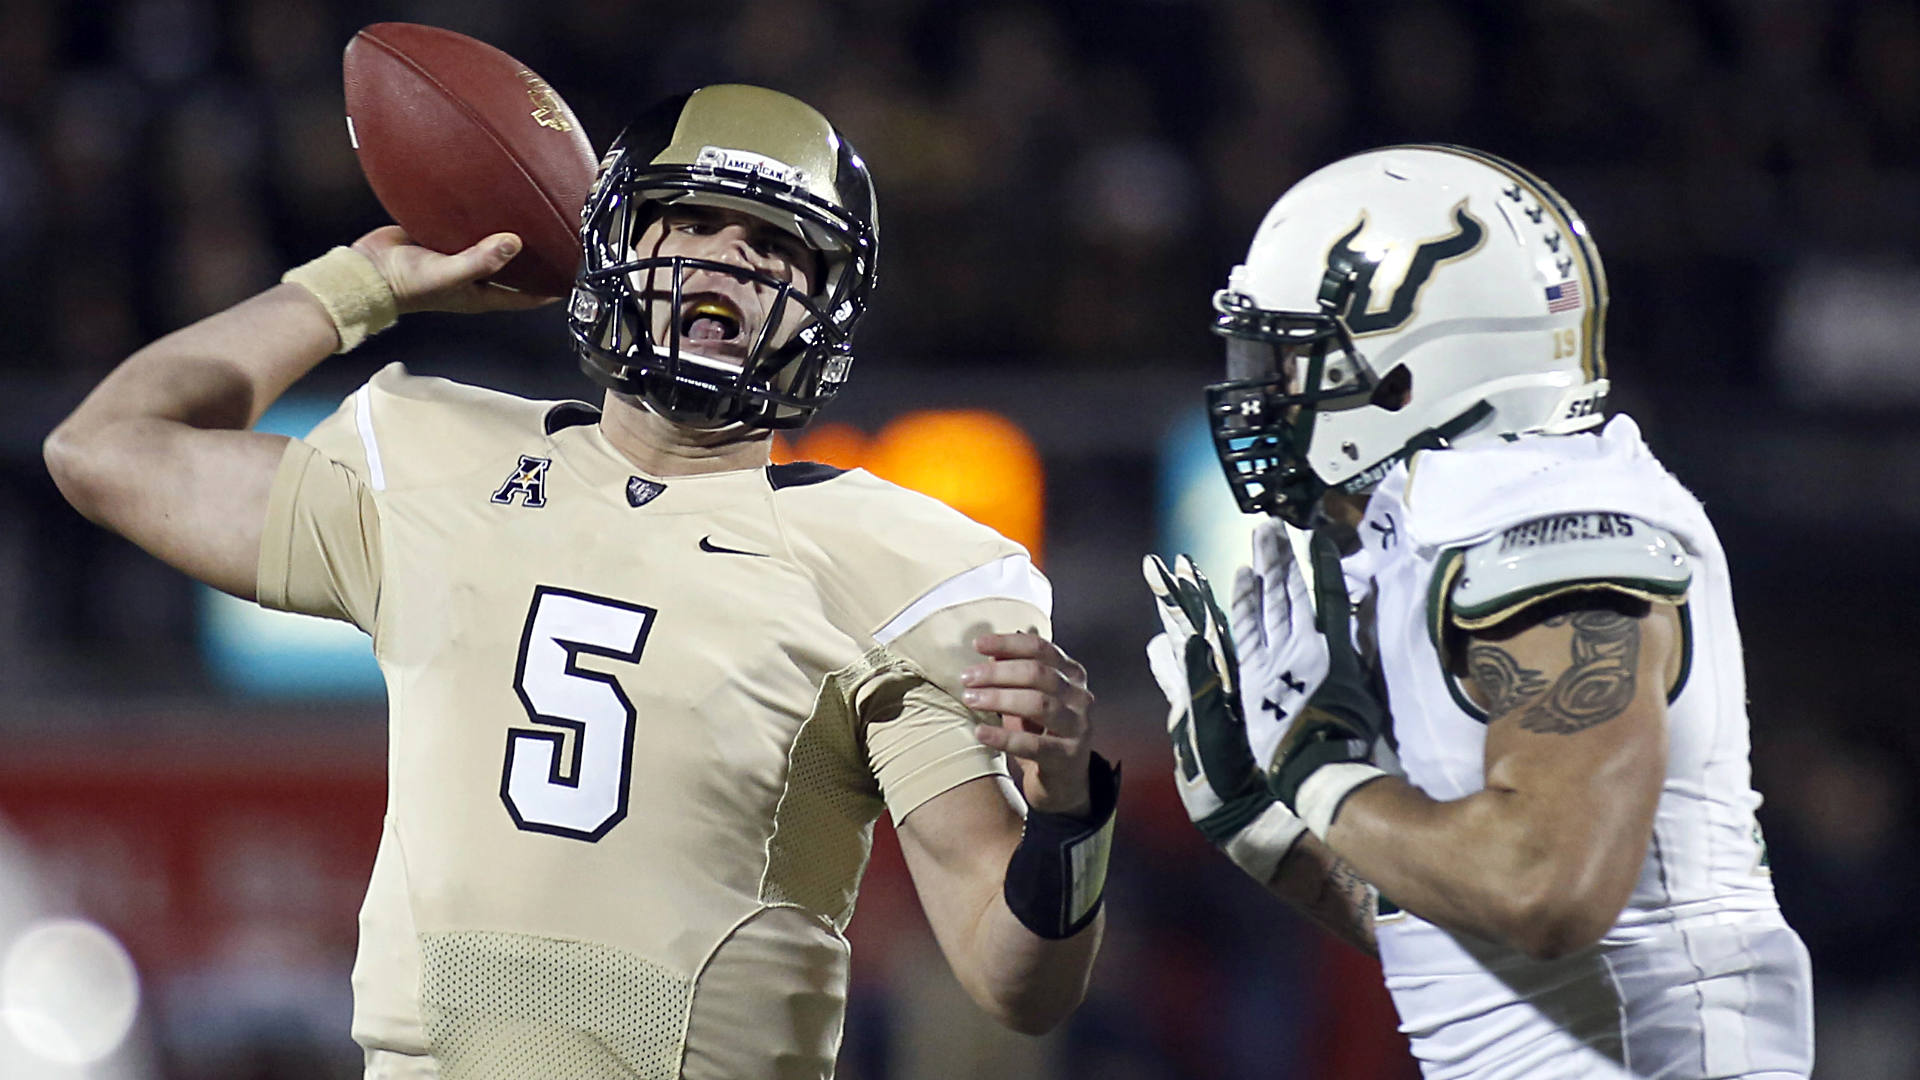 2014 NFL Draft -- Jaguars select QB Blake Bortles with No. 3 pick